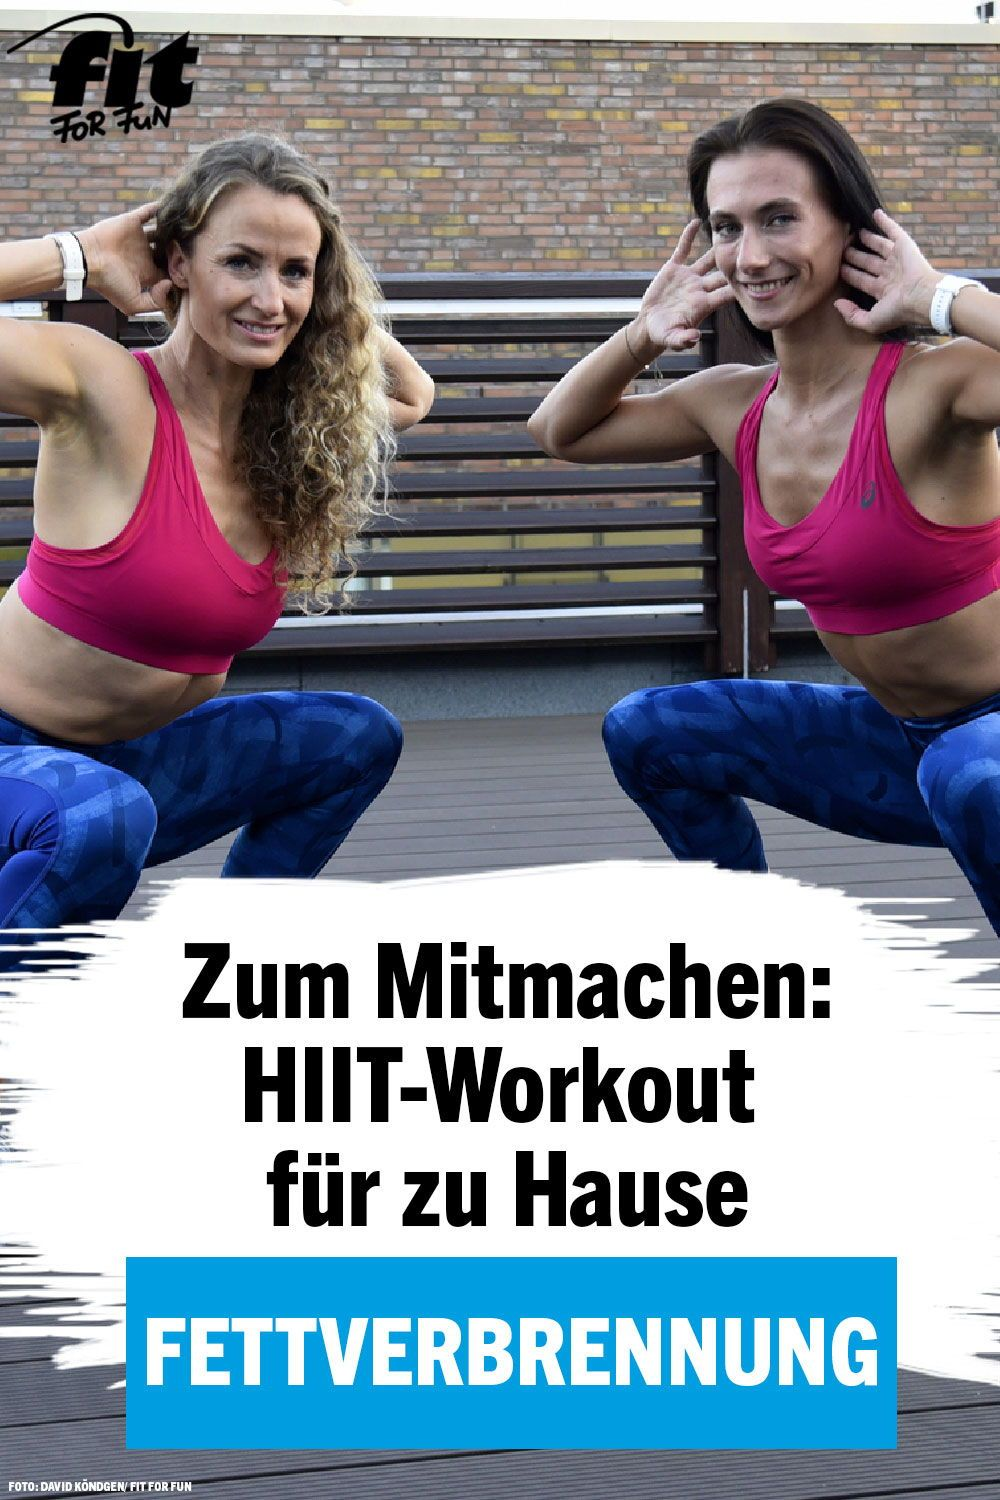 HIIT-Training in 11 Minuten: Das Fatburning-Workout ohne Geräte – FIT FOR FUN